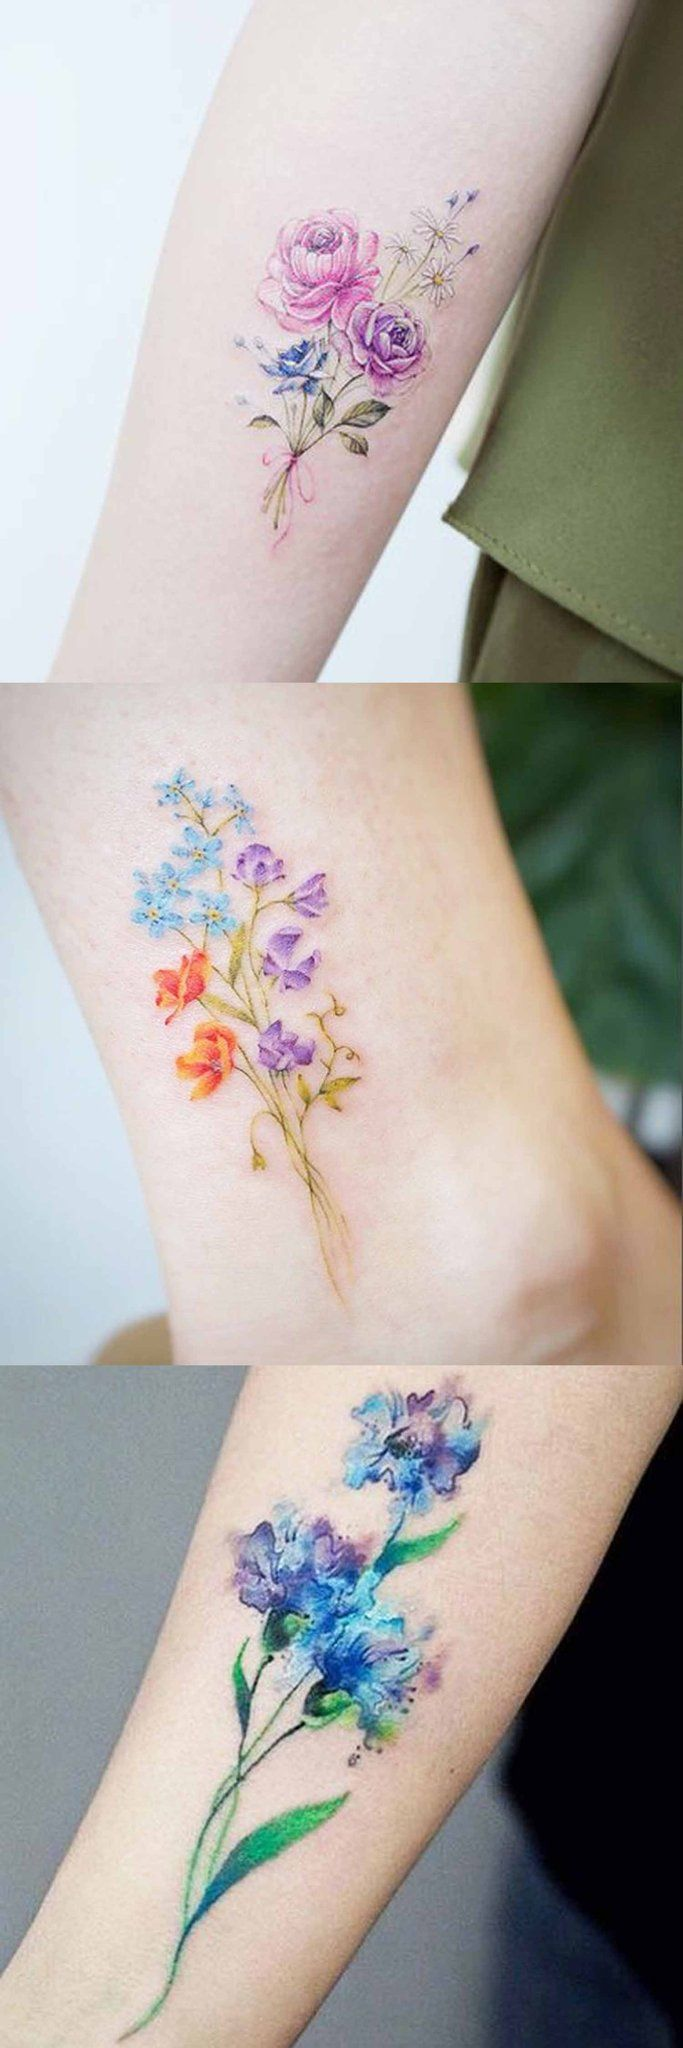 Flower Design On The Wrist Henna Tattoo: Small Tiny Floral Flower Tattoo Ideas At MyBodiArt.com